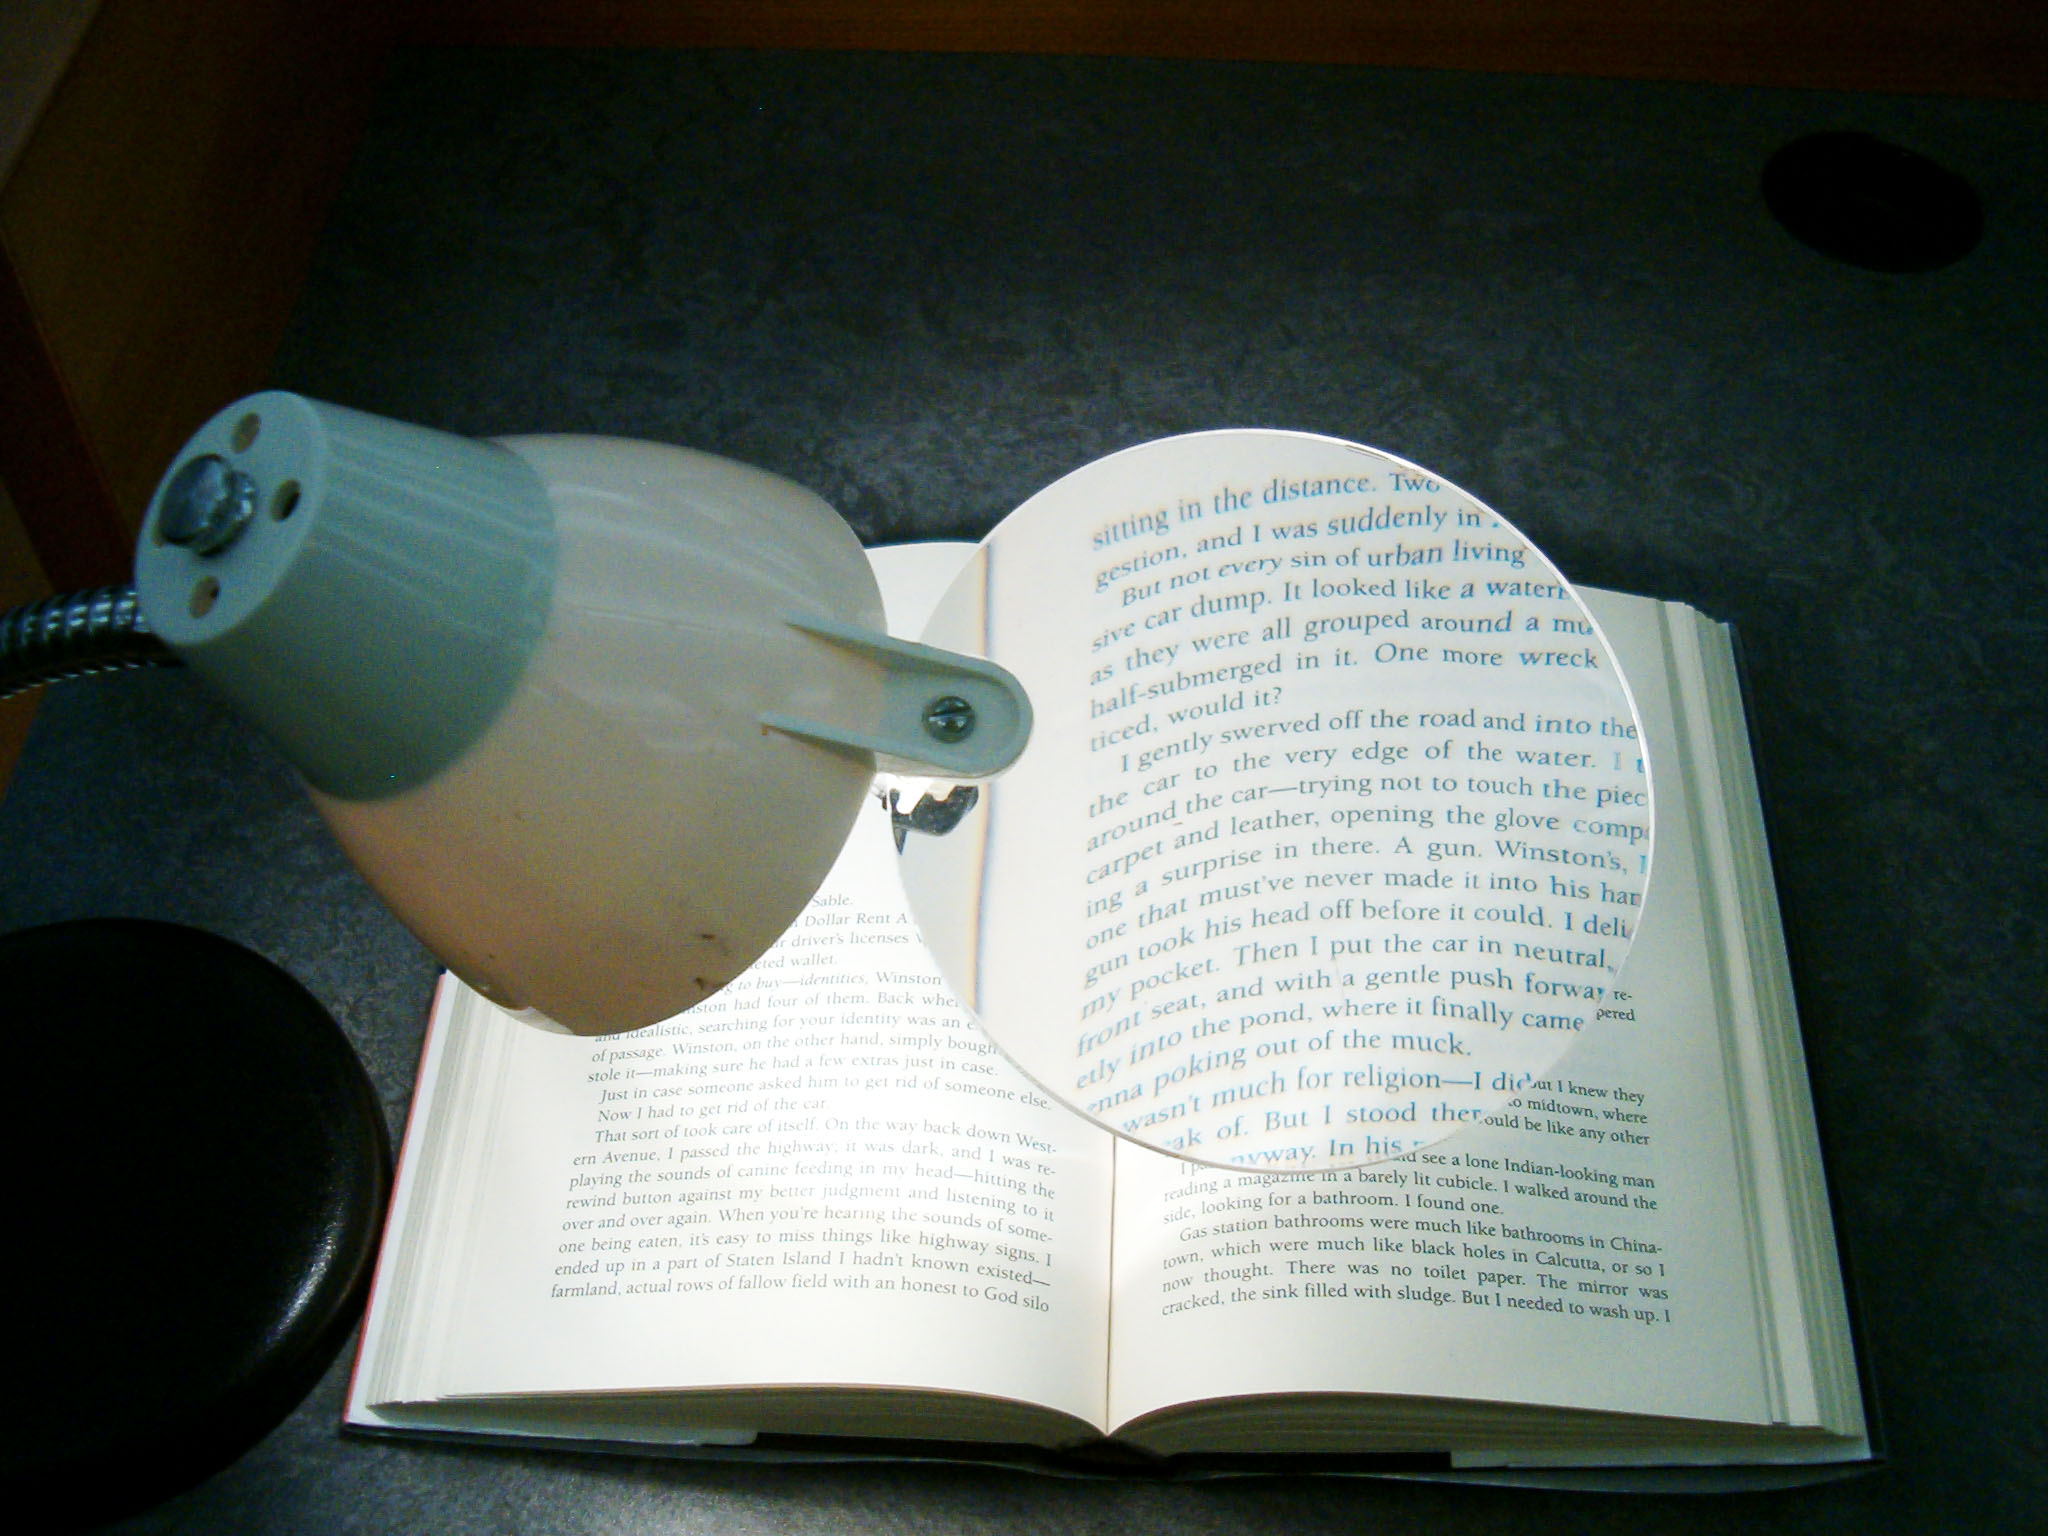 High-Intensity Magnifier Lamp with Add-On Lens